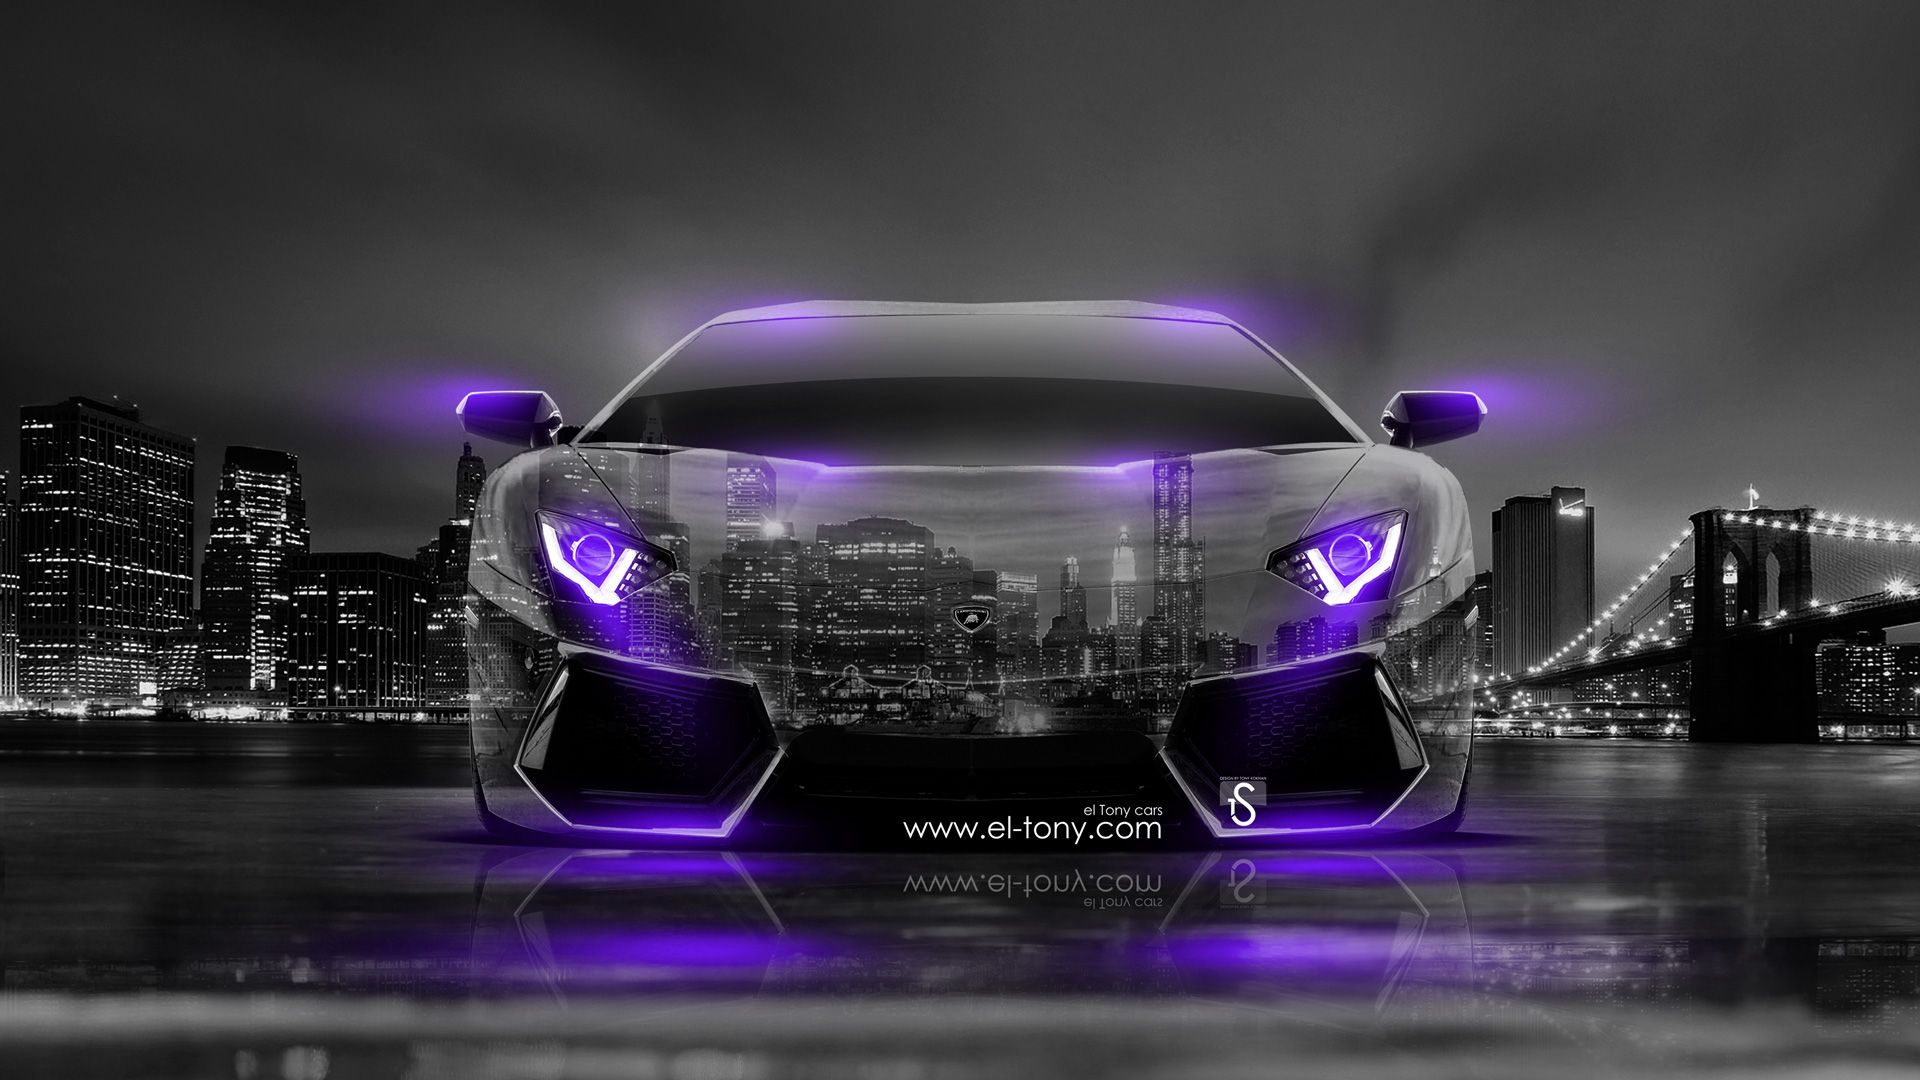 Black Lamborghini With Neon Blue Lights | Lamborghini Aventador Front  Crystal City Car 2014 Violet Neon Design .